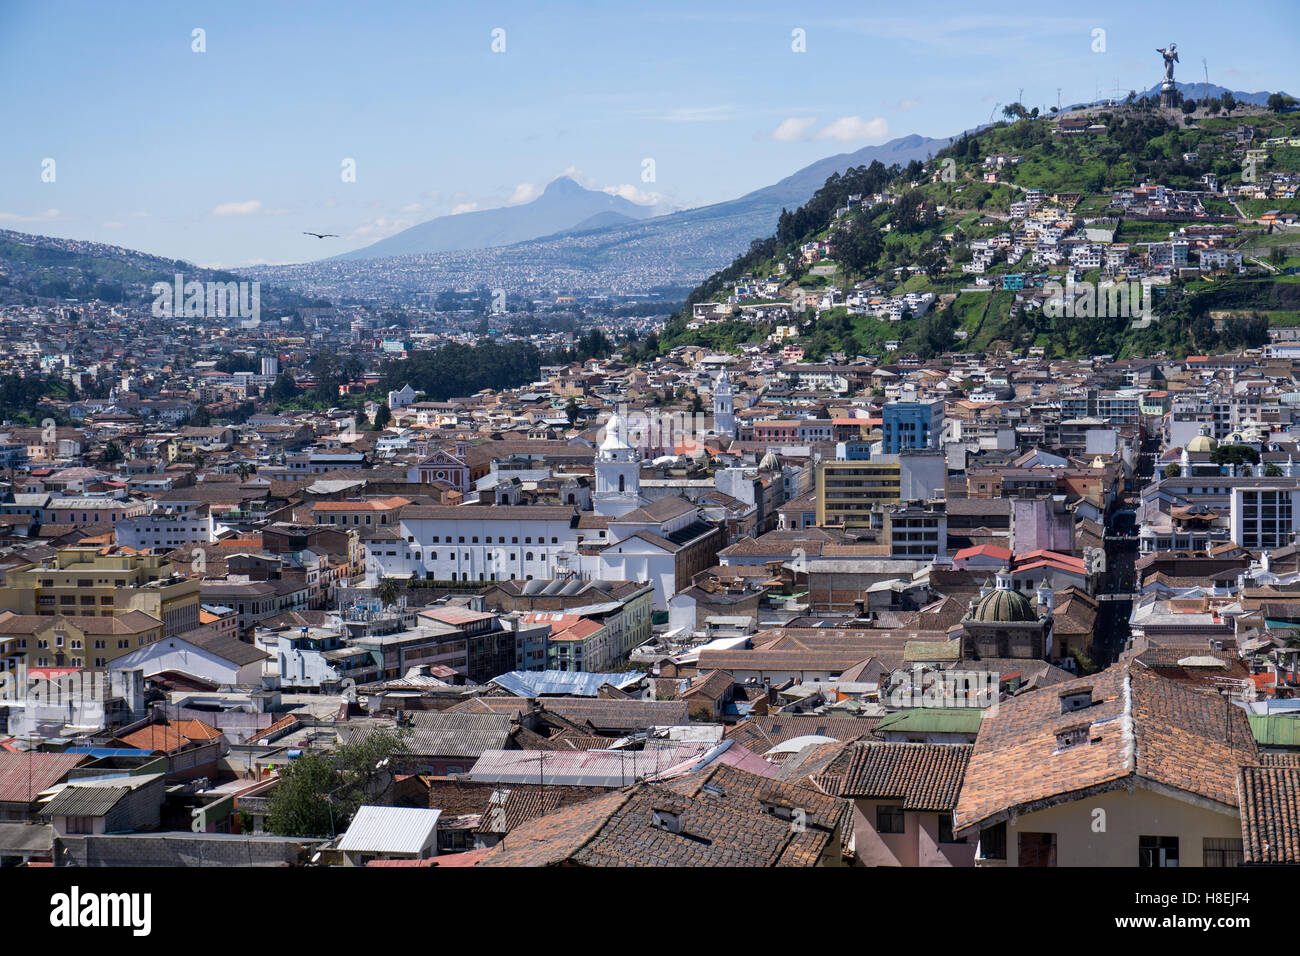 City view, Quito, Ecuador, South America - Stock Image